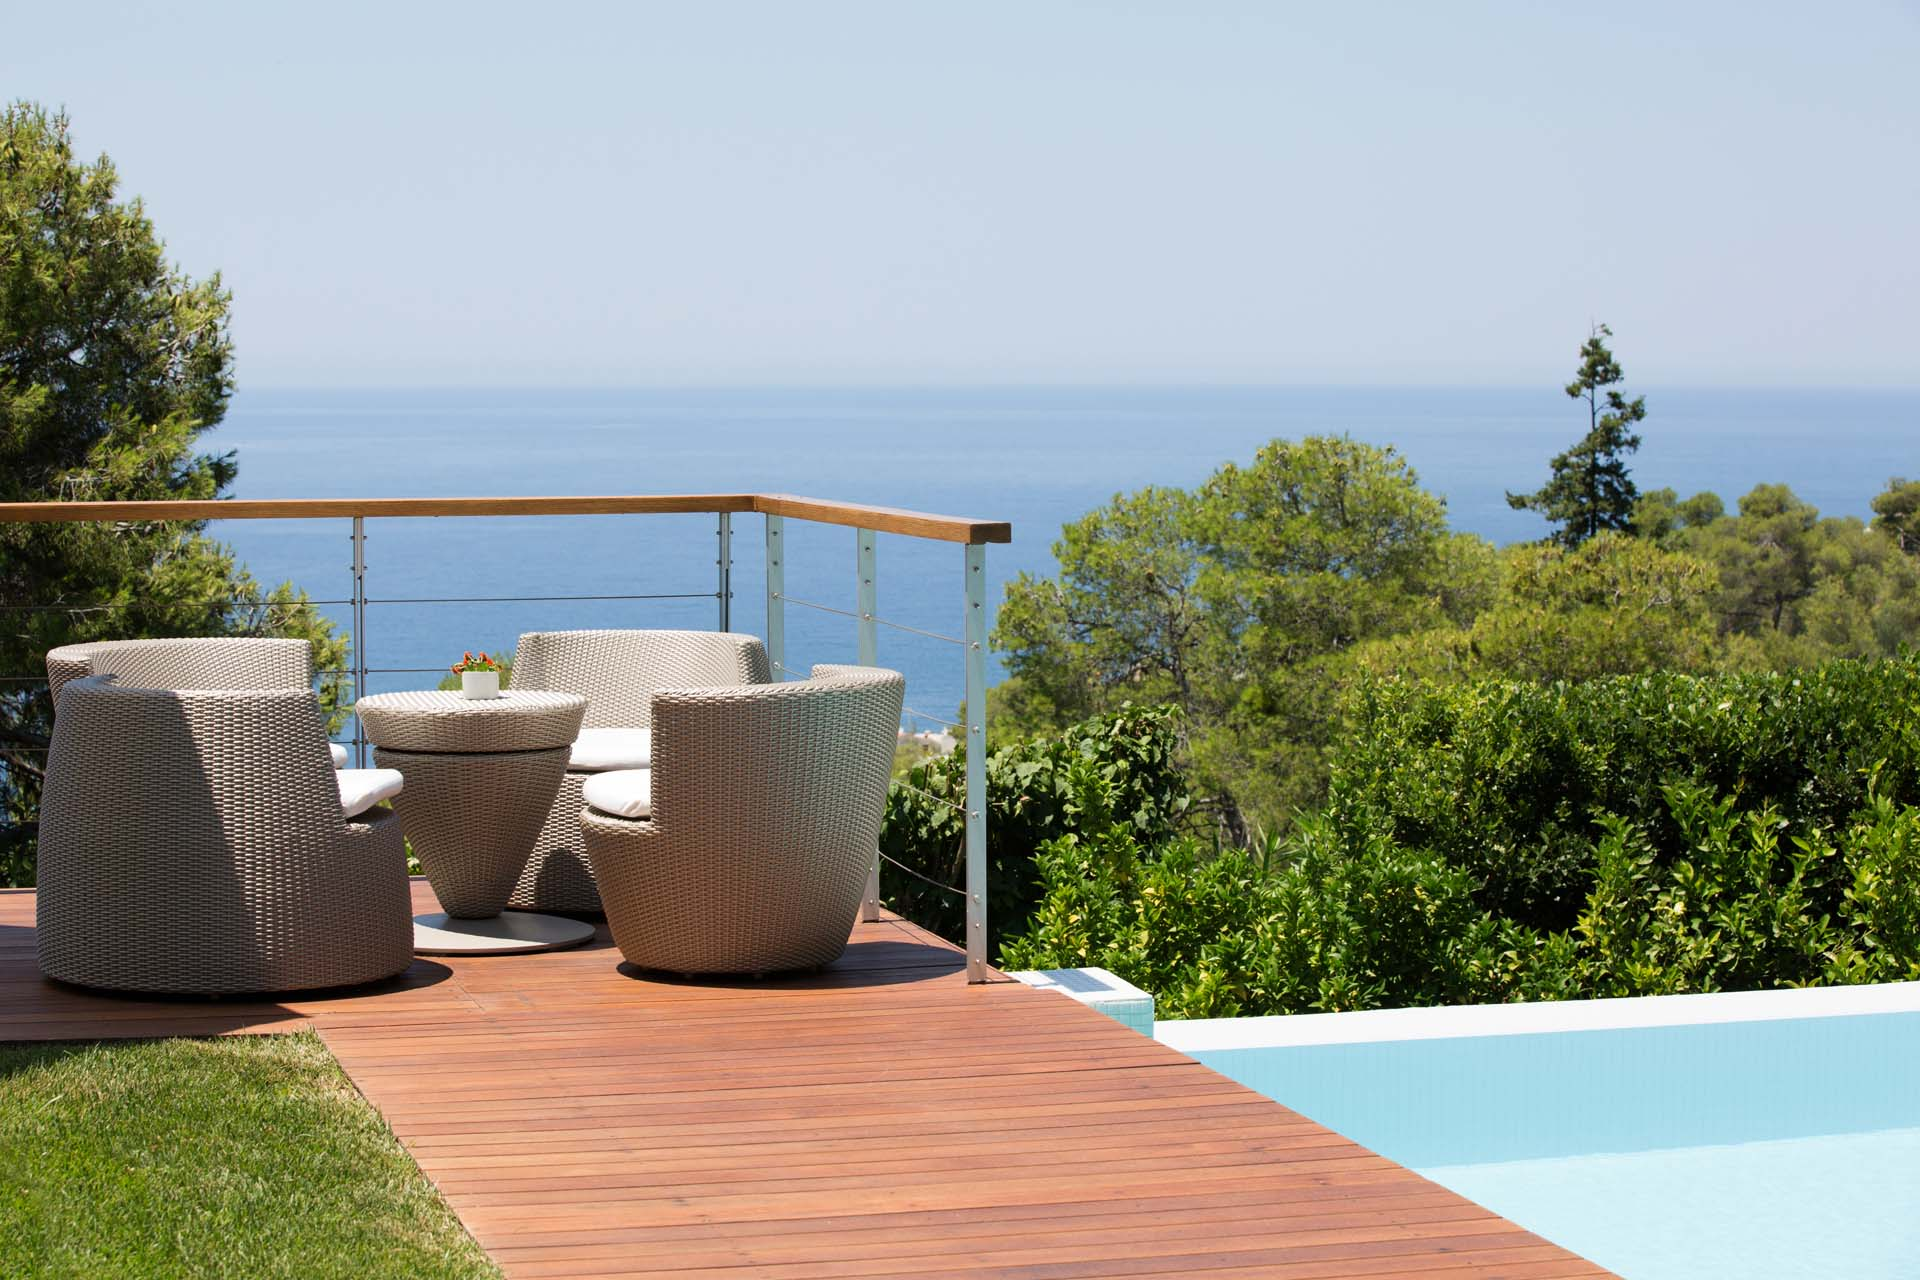 Sitting on the dock of the pool and admiring the sea view is simply second to none